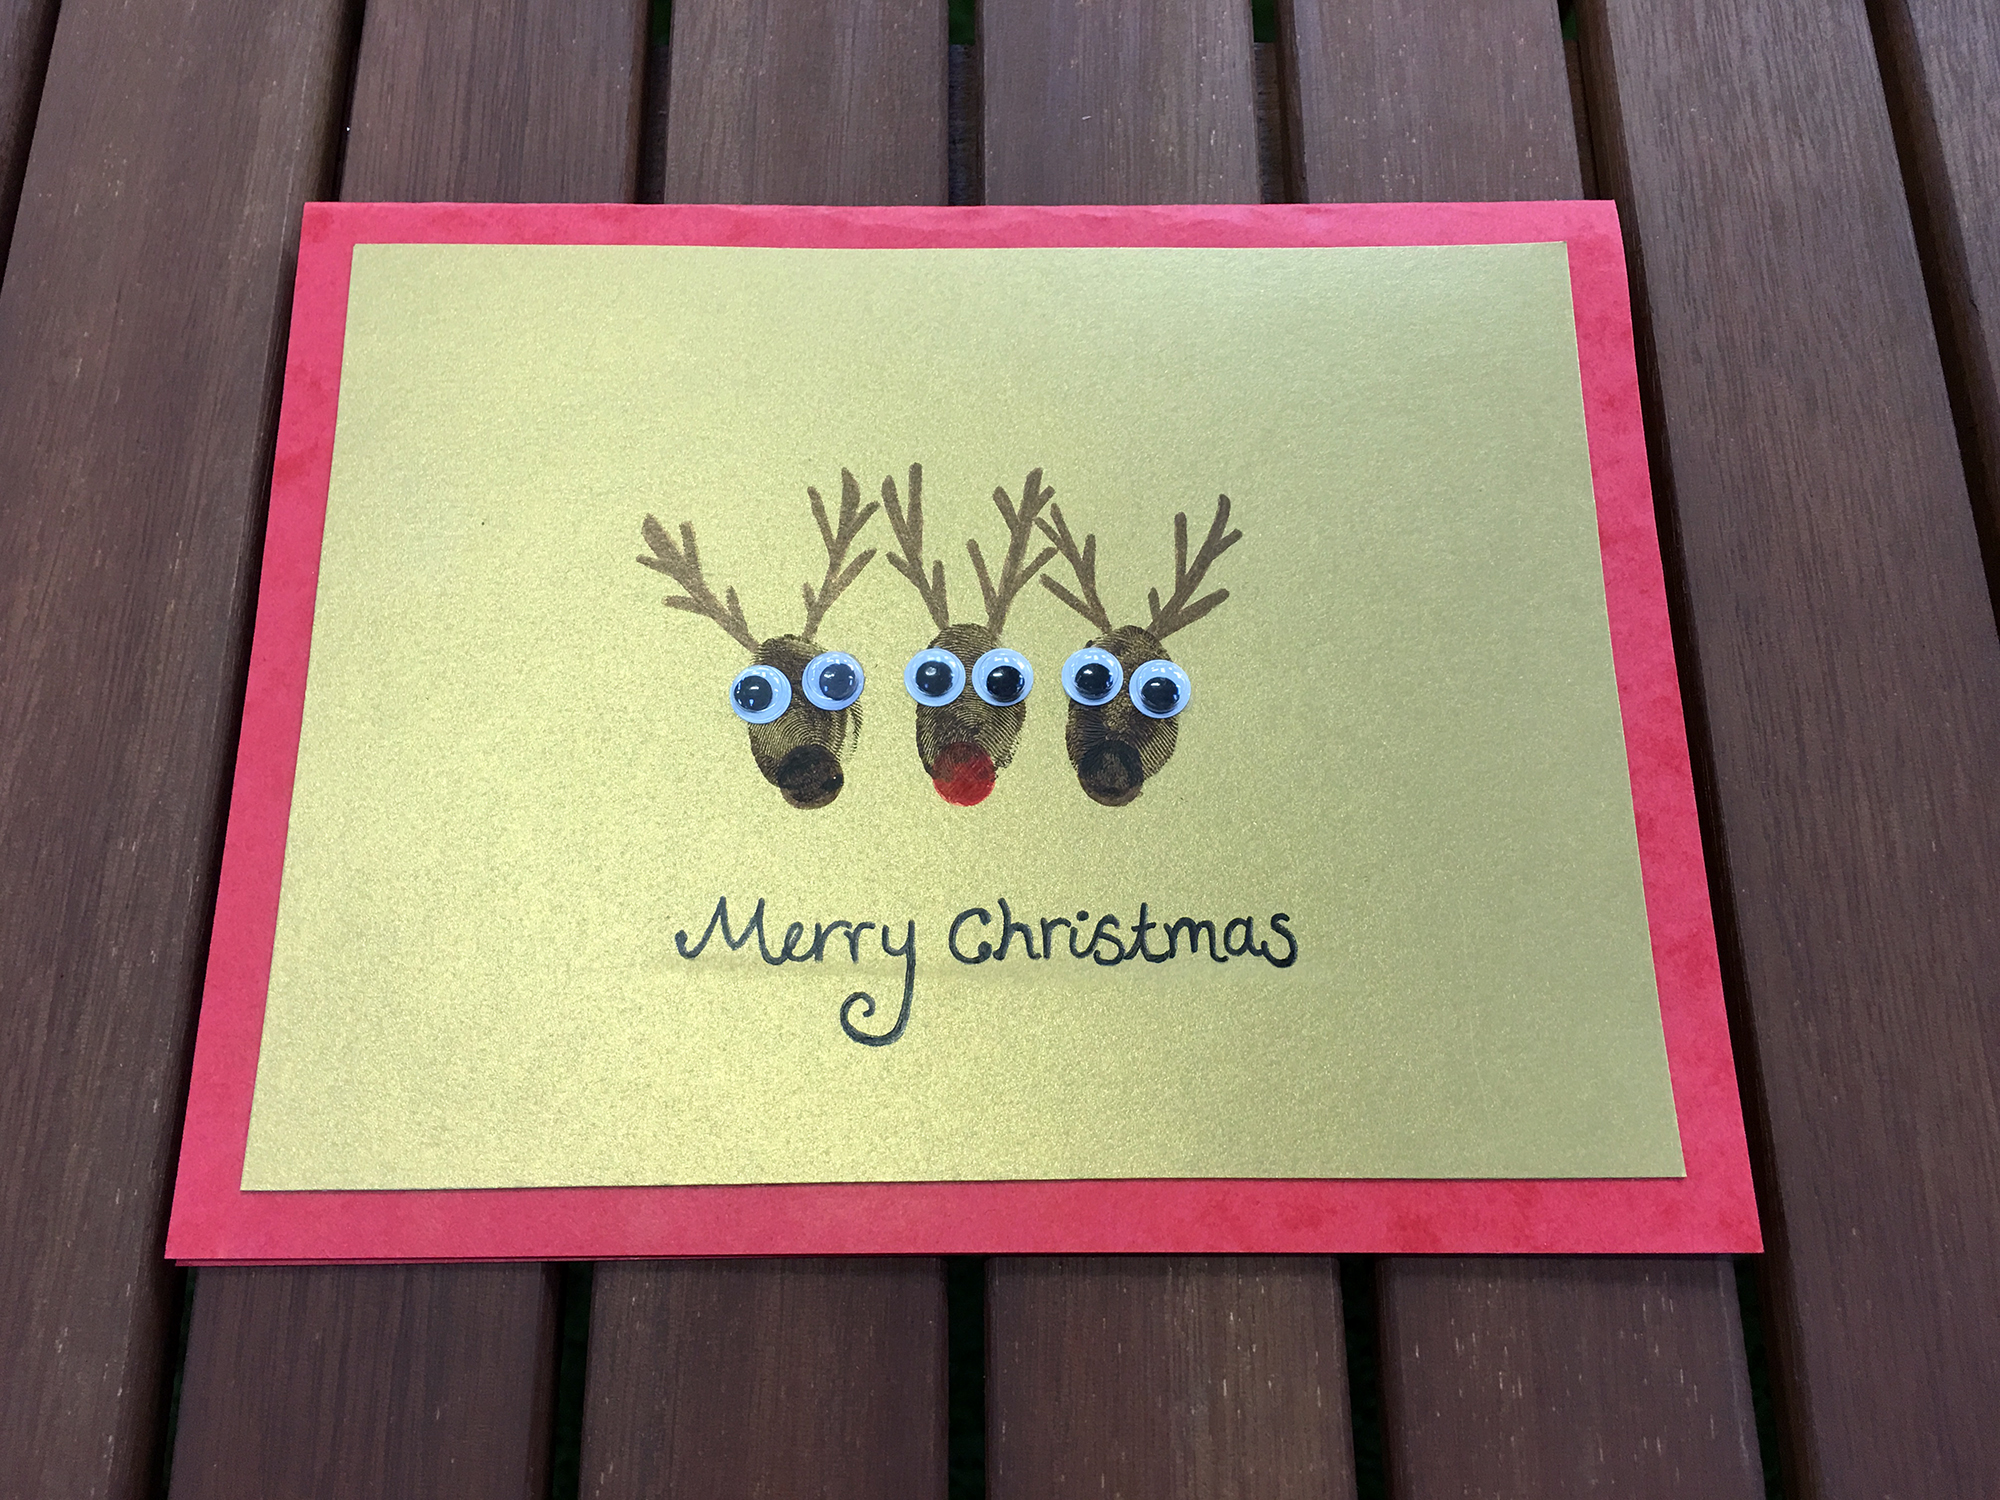 Homemade Christmas Card Ideas - Cowling & Wilcox Blog